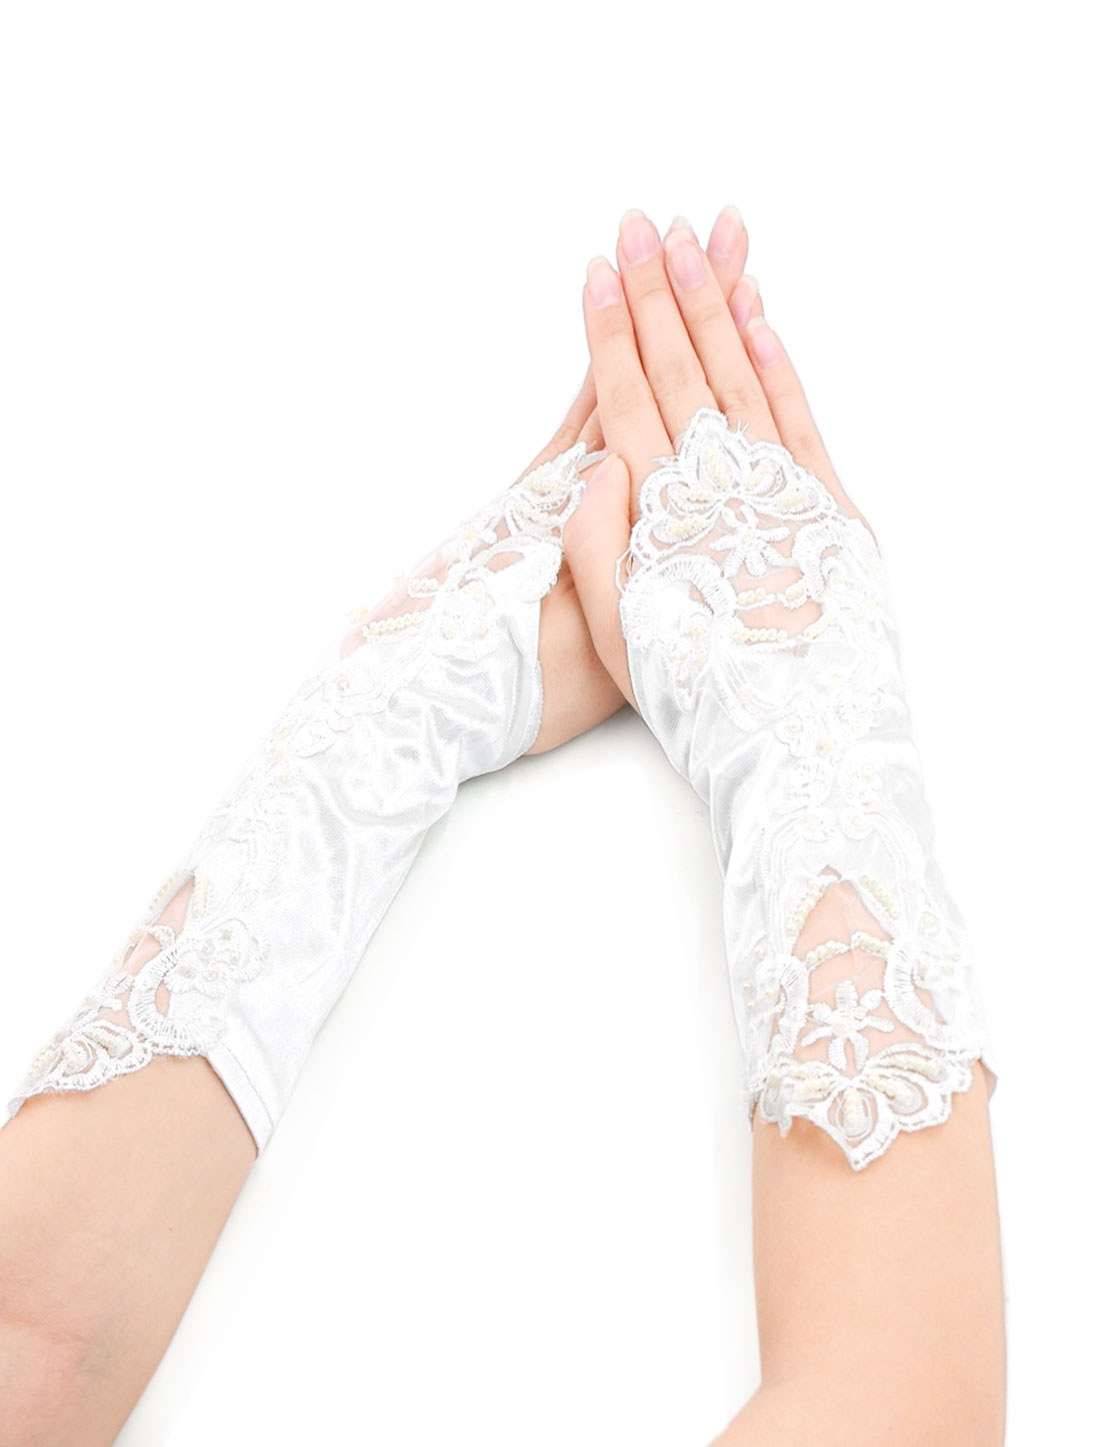 Women Beaded Sequined Mesh Crochet Fingerless Gloves White